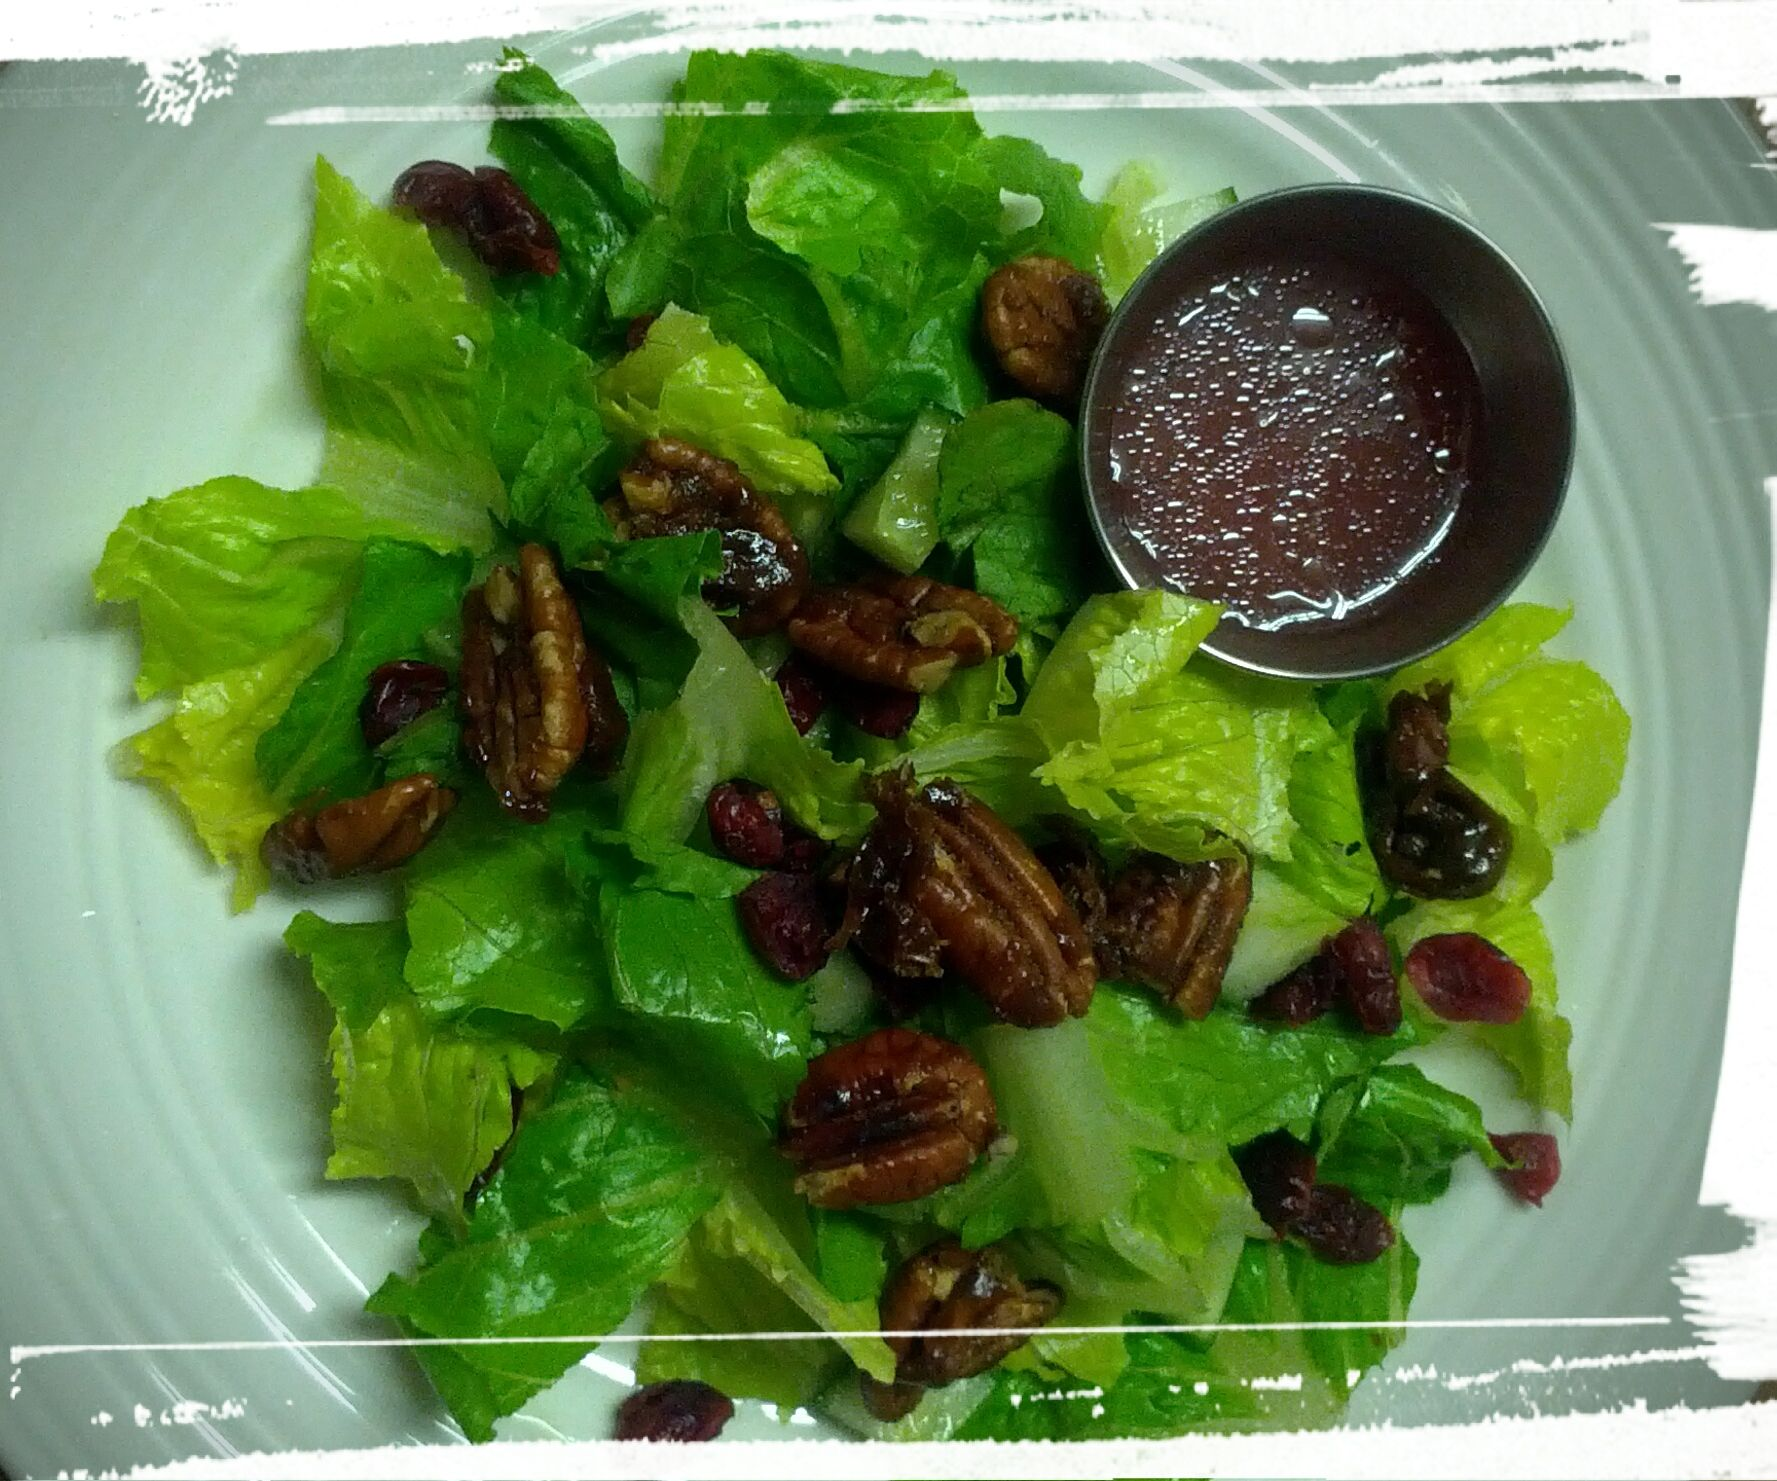 Salad Toppings: Candied Pecans